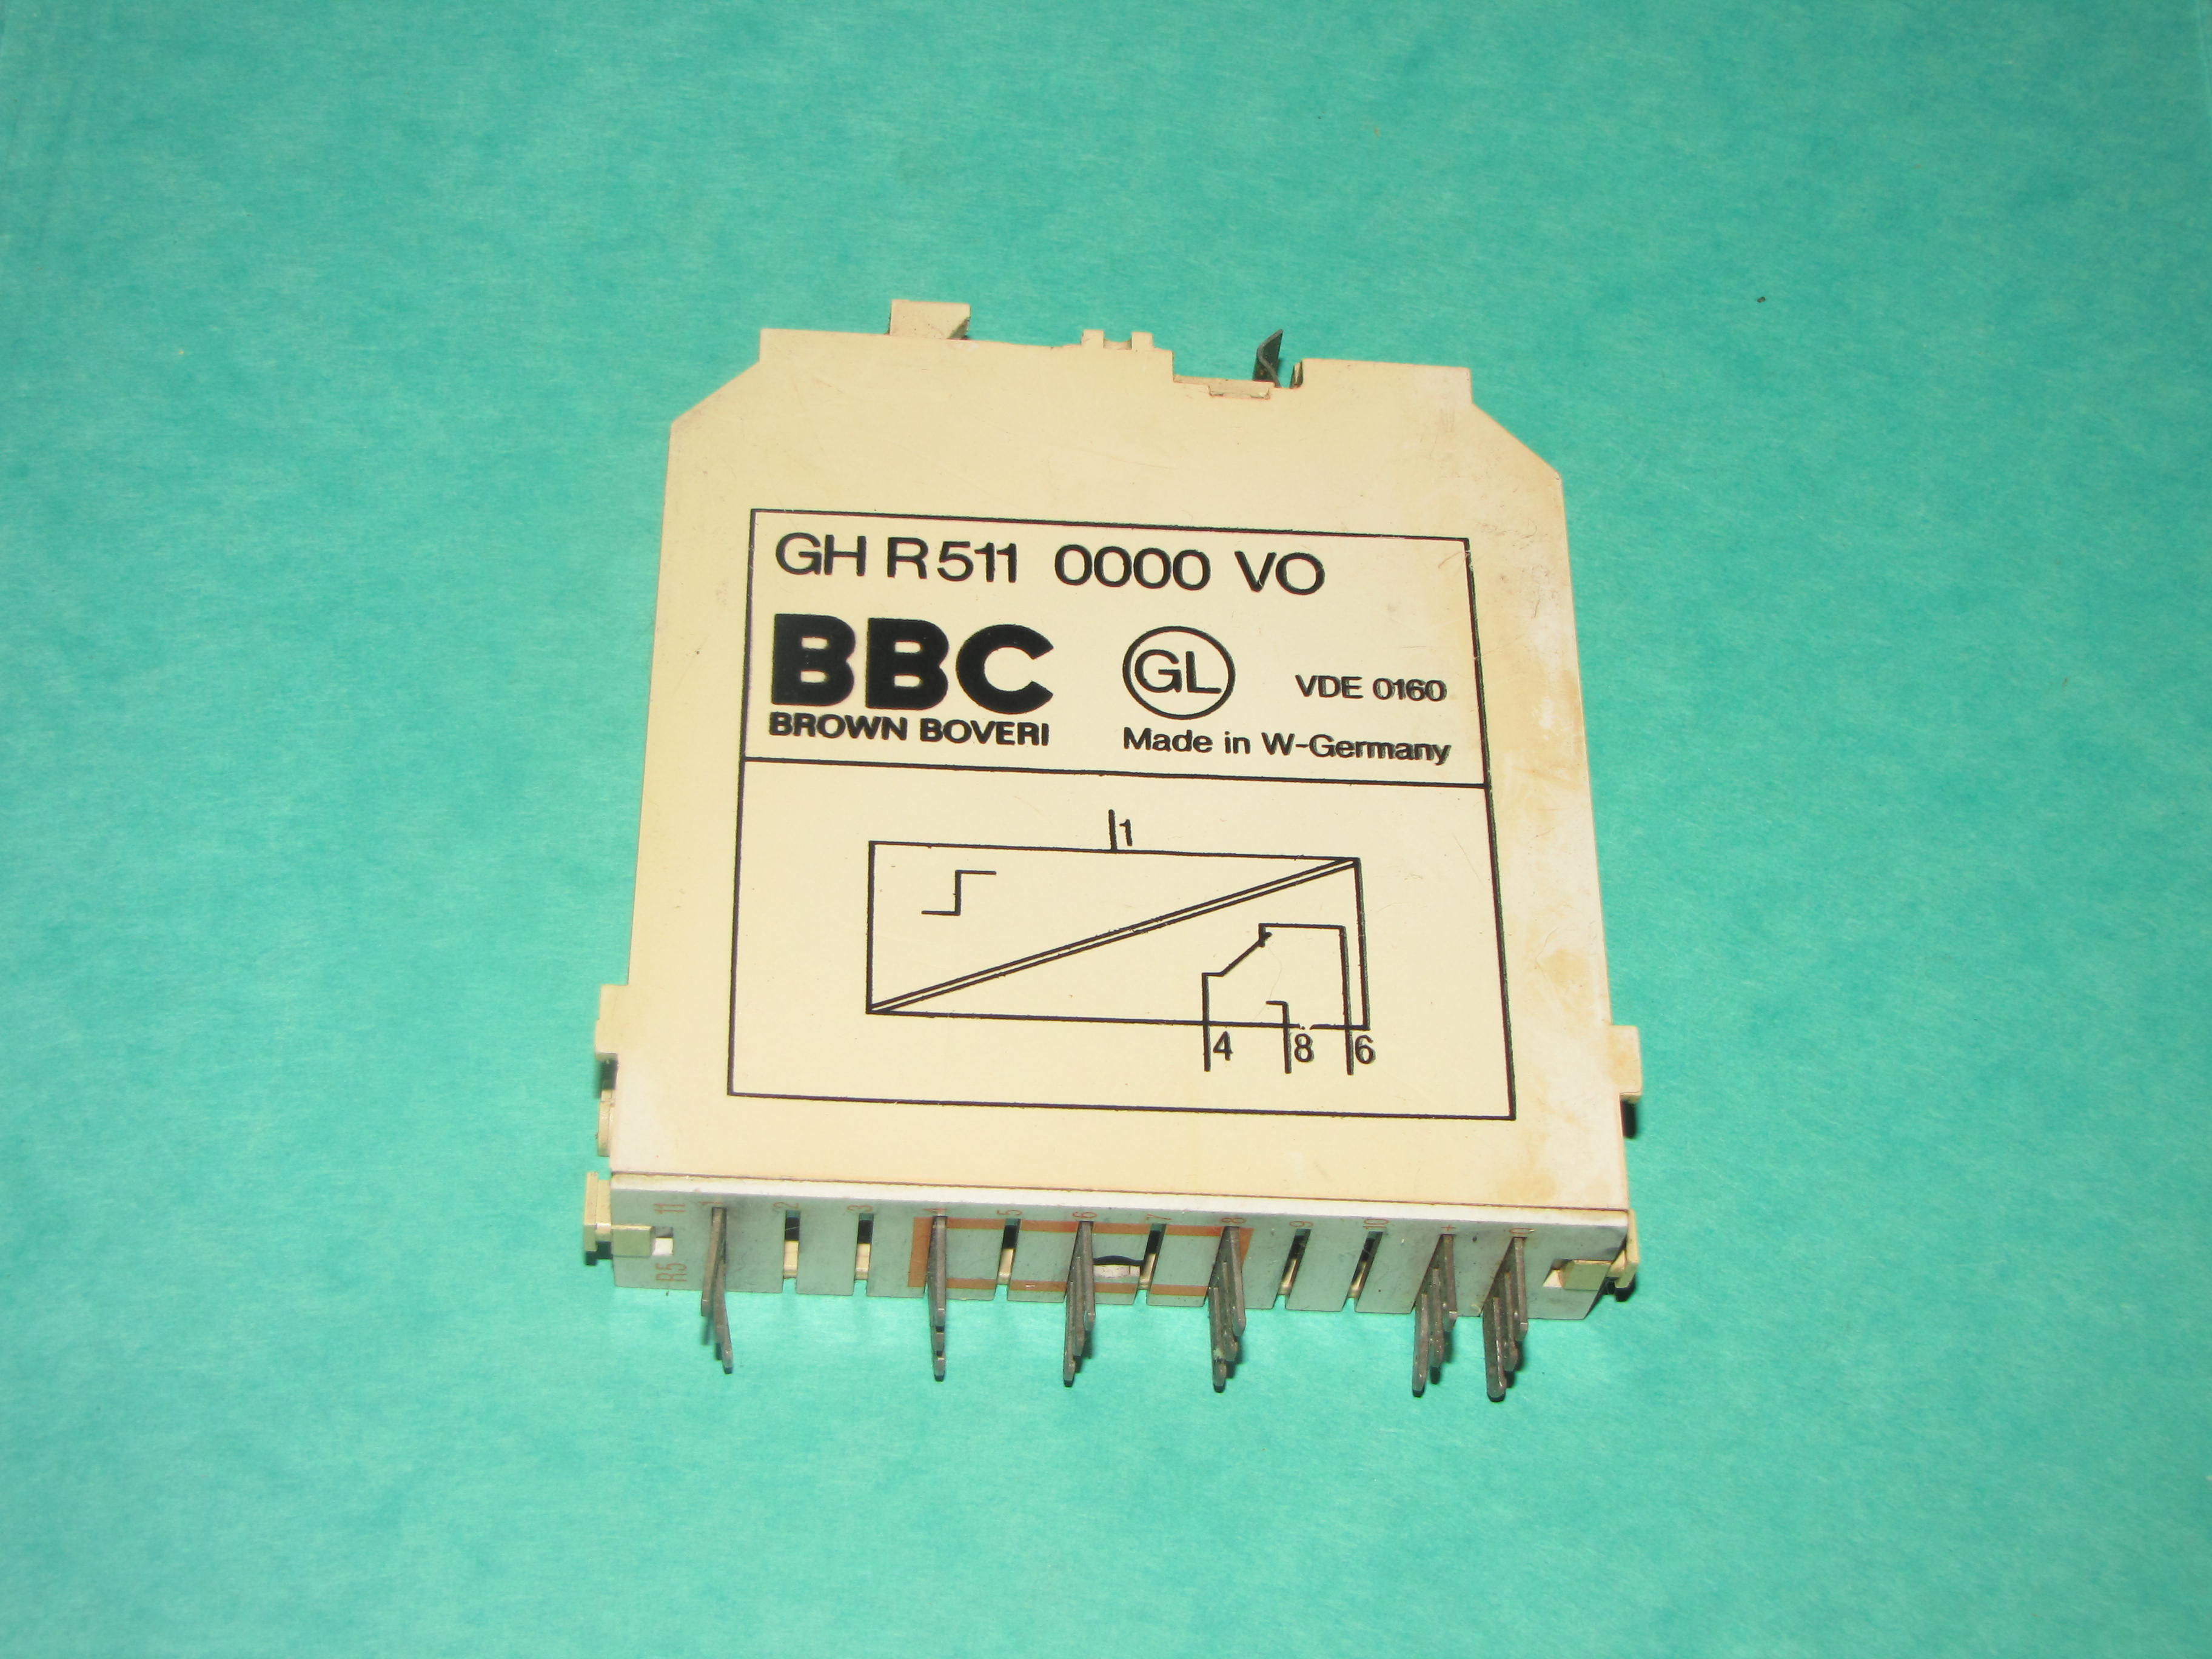 BBC out relay card GH R 511